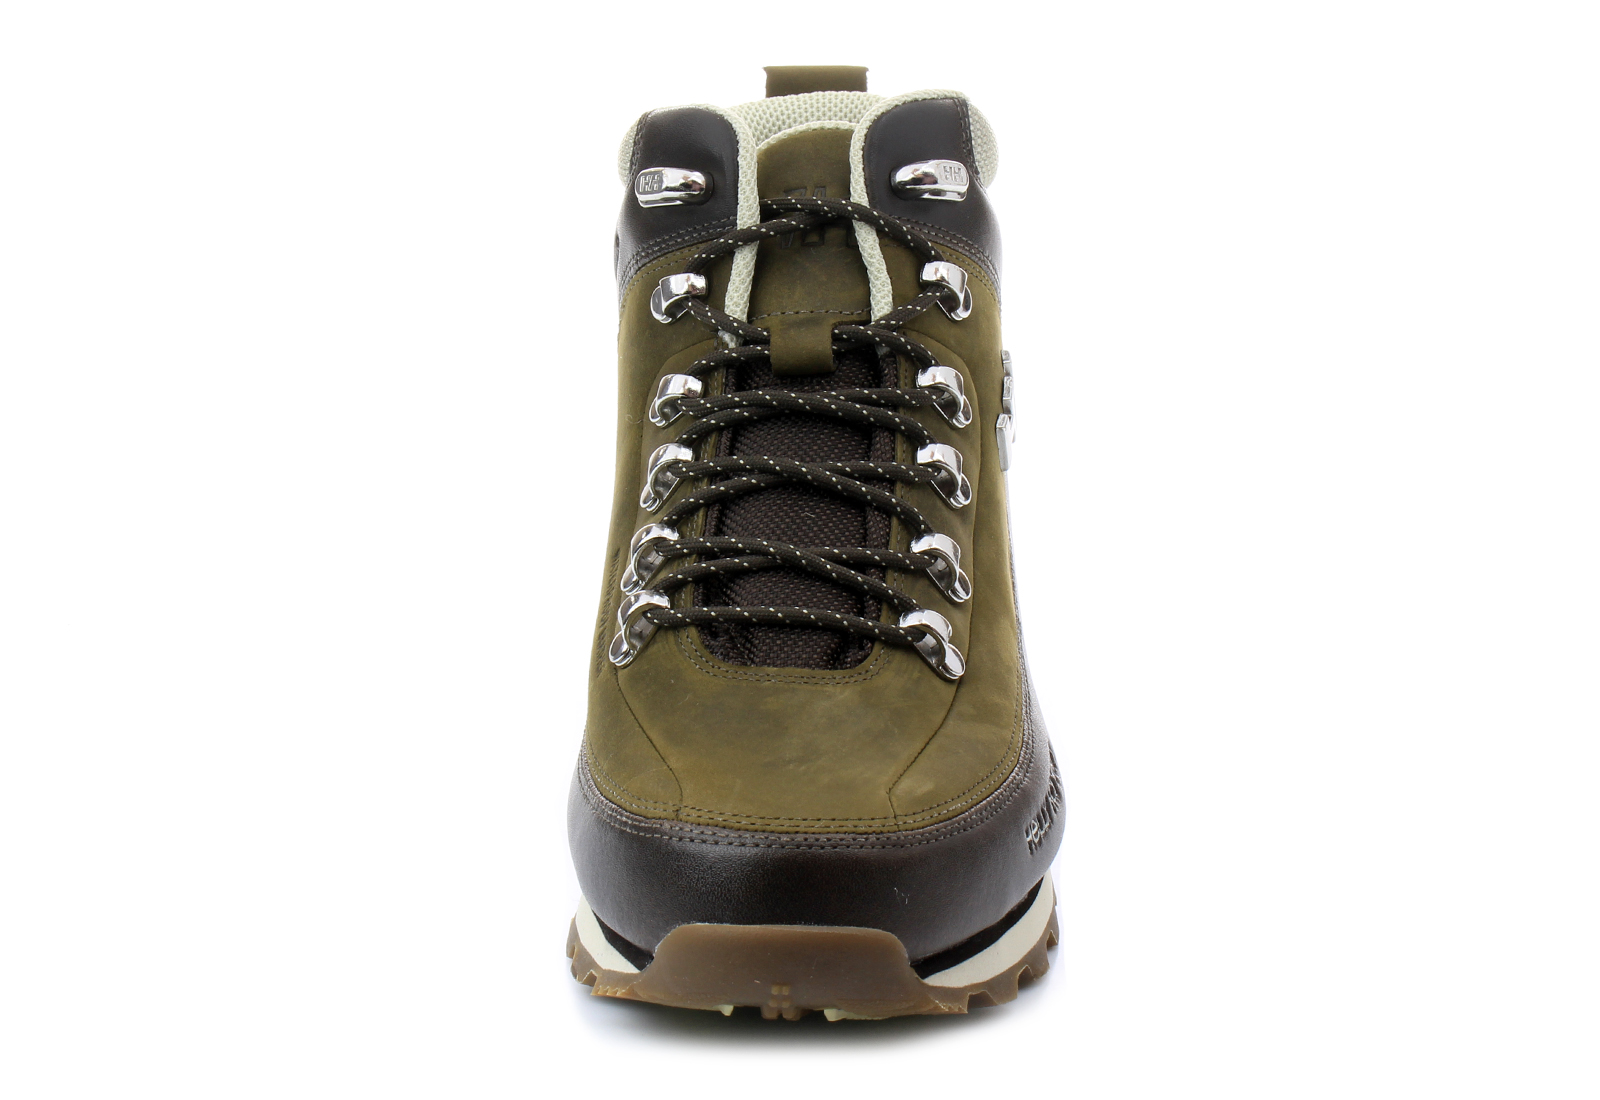 2457cfd53013 Helly Hansen Bakancs - W The Forester - 10516-708 - Office Shoes ...